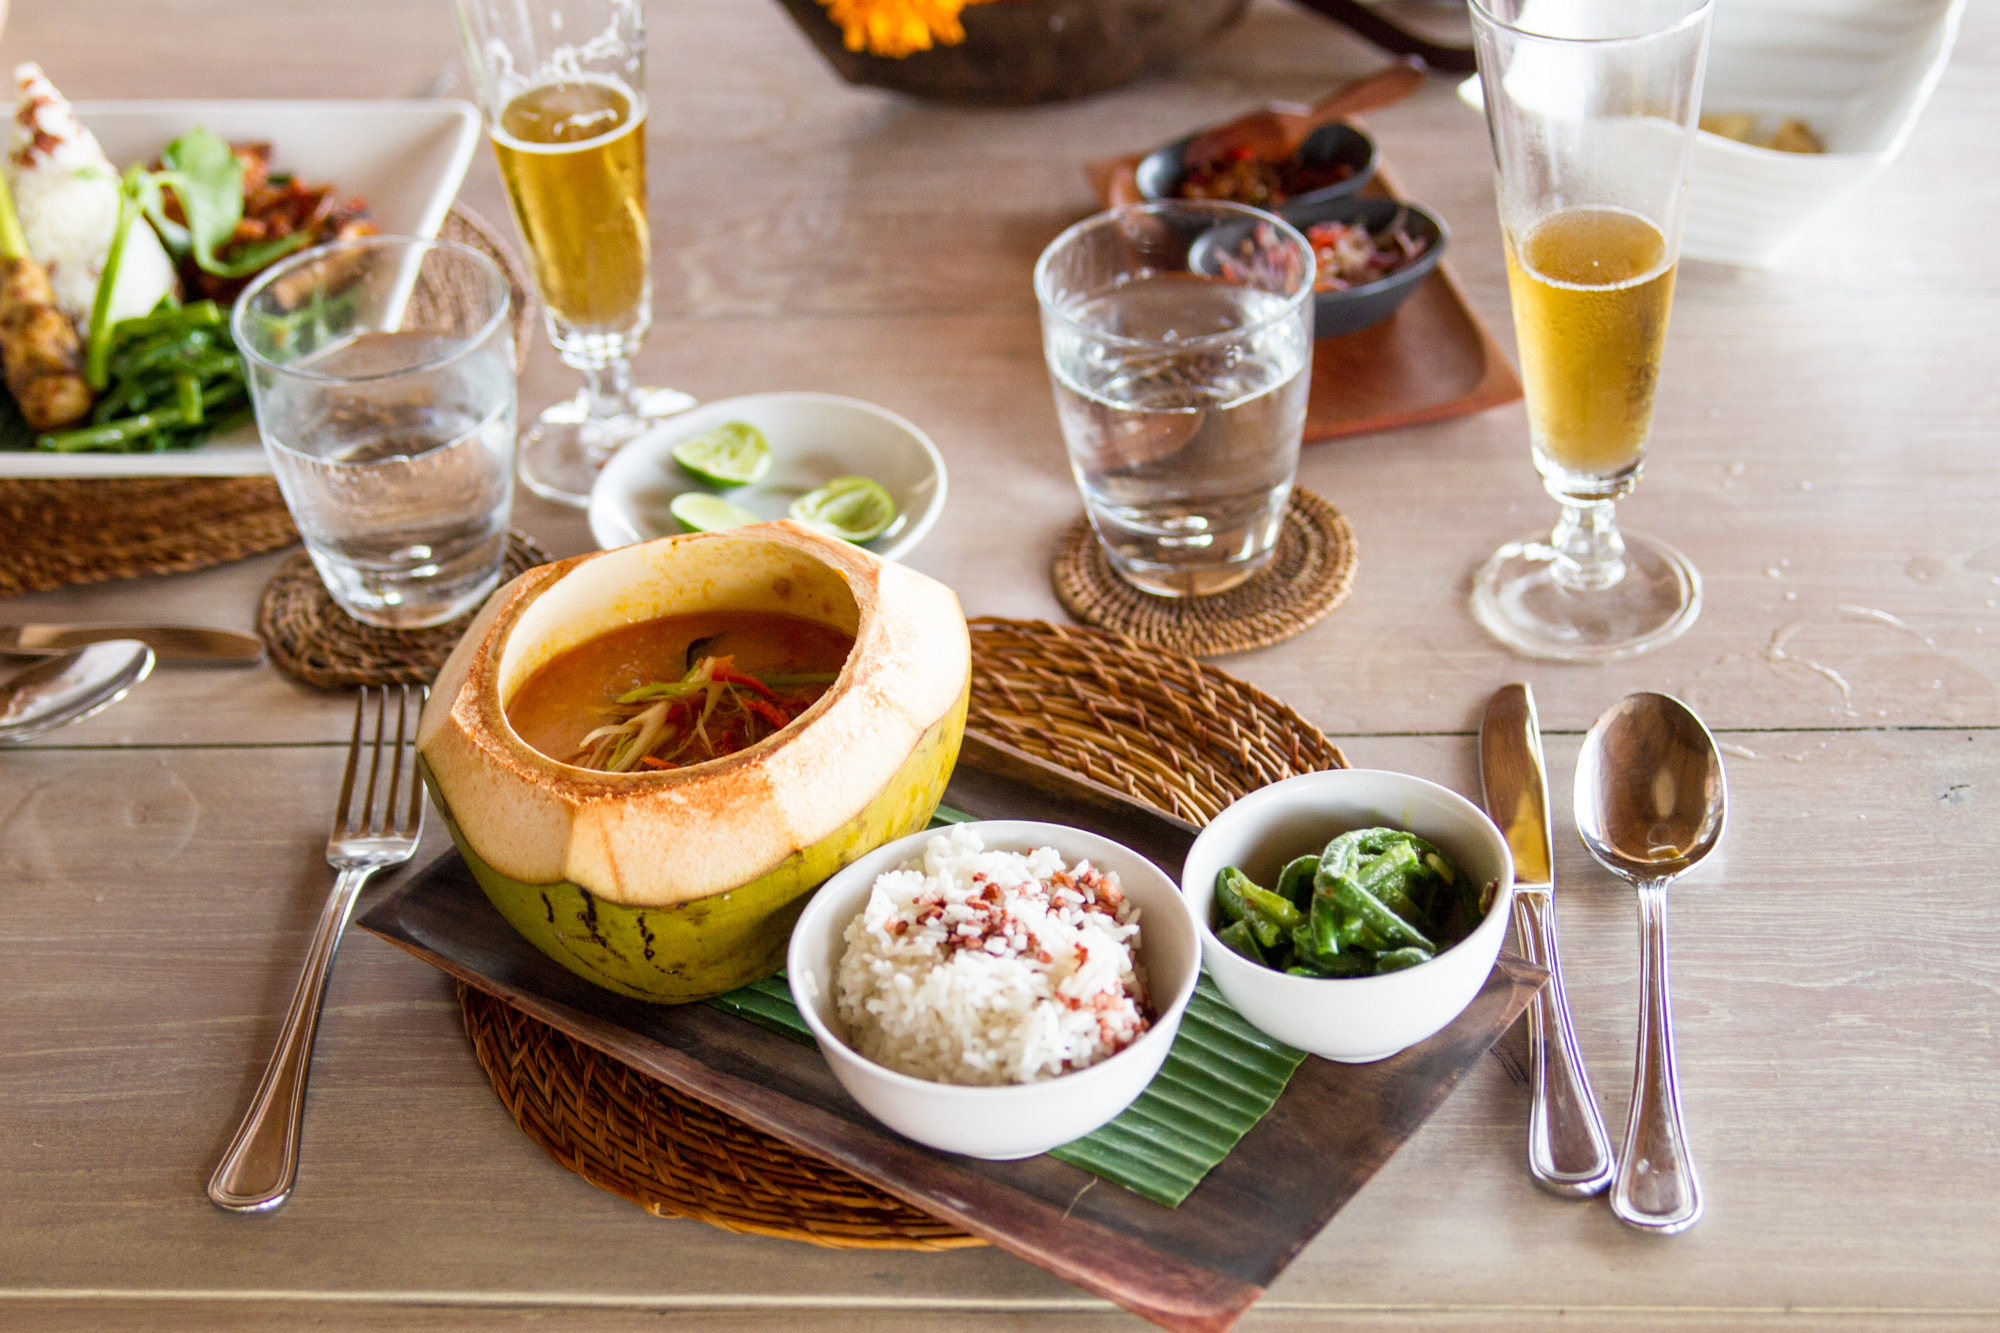 Delicious lunch at the Indus Restaurant, Ubud